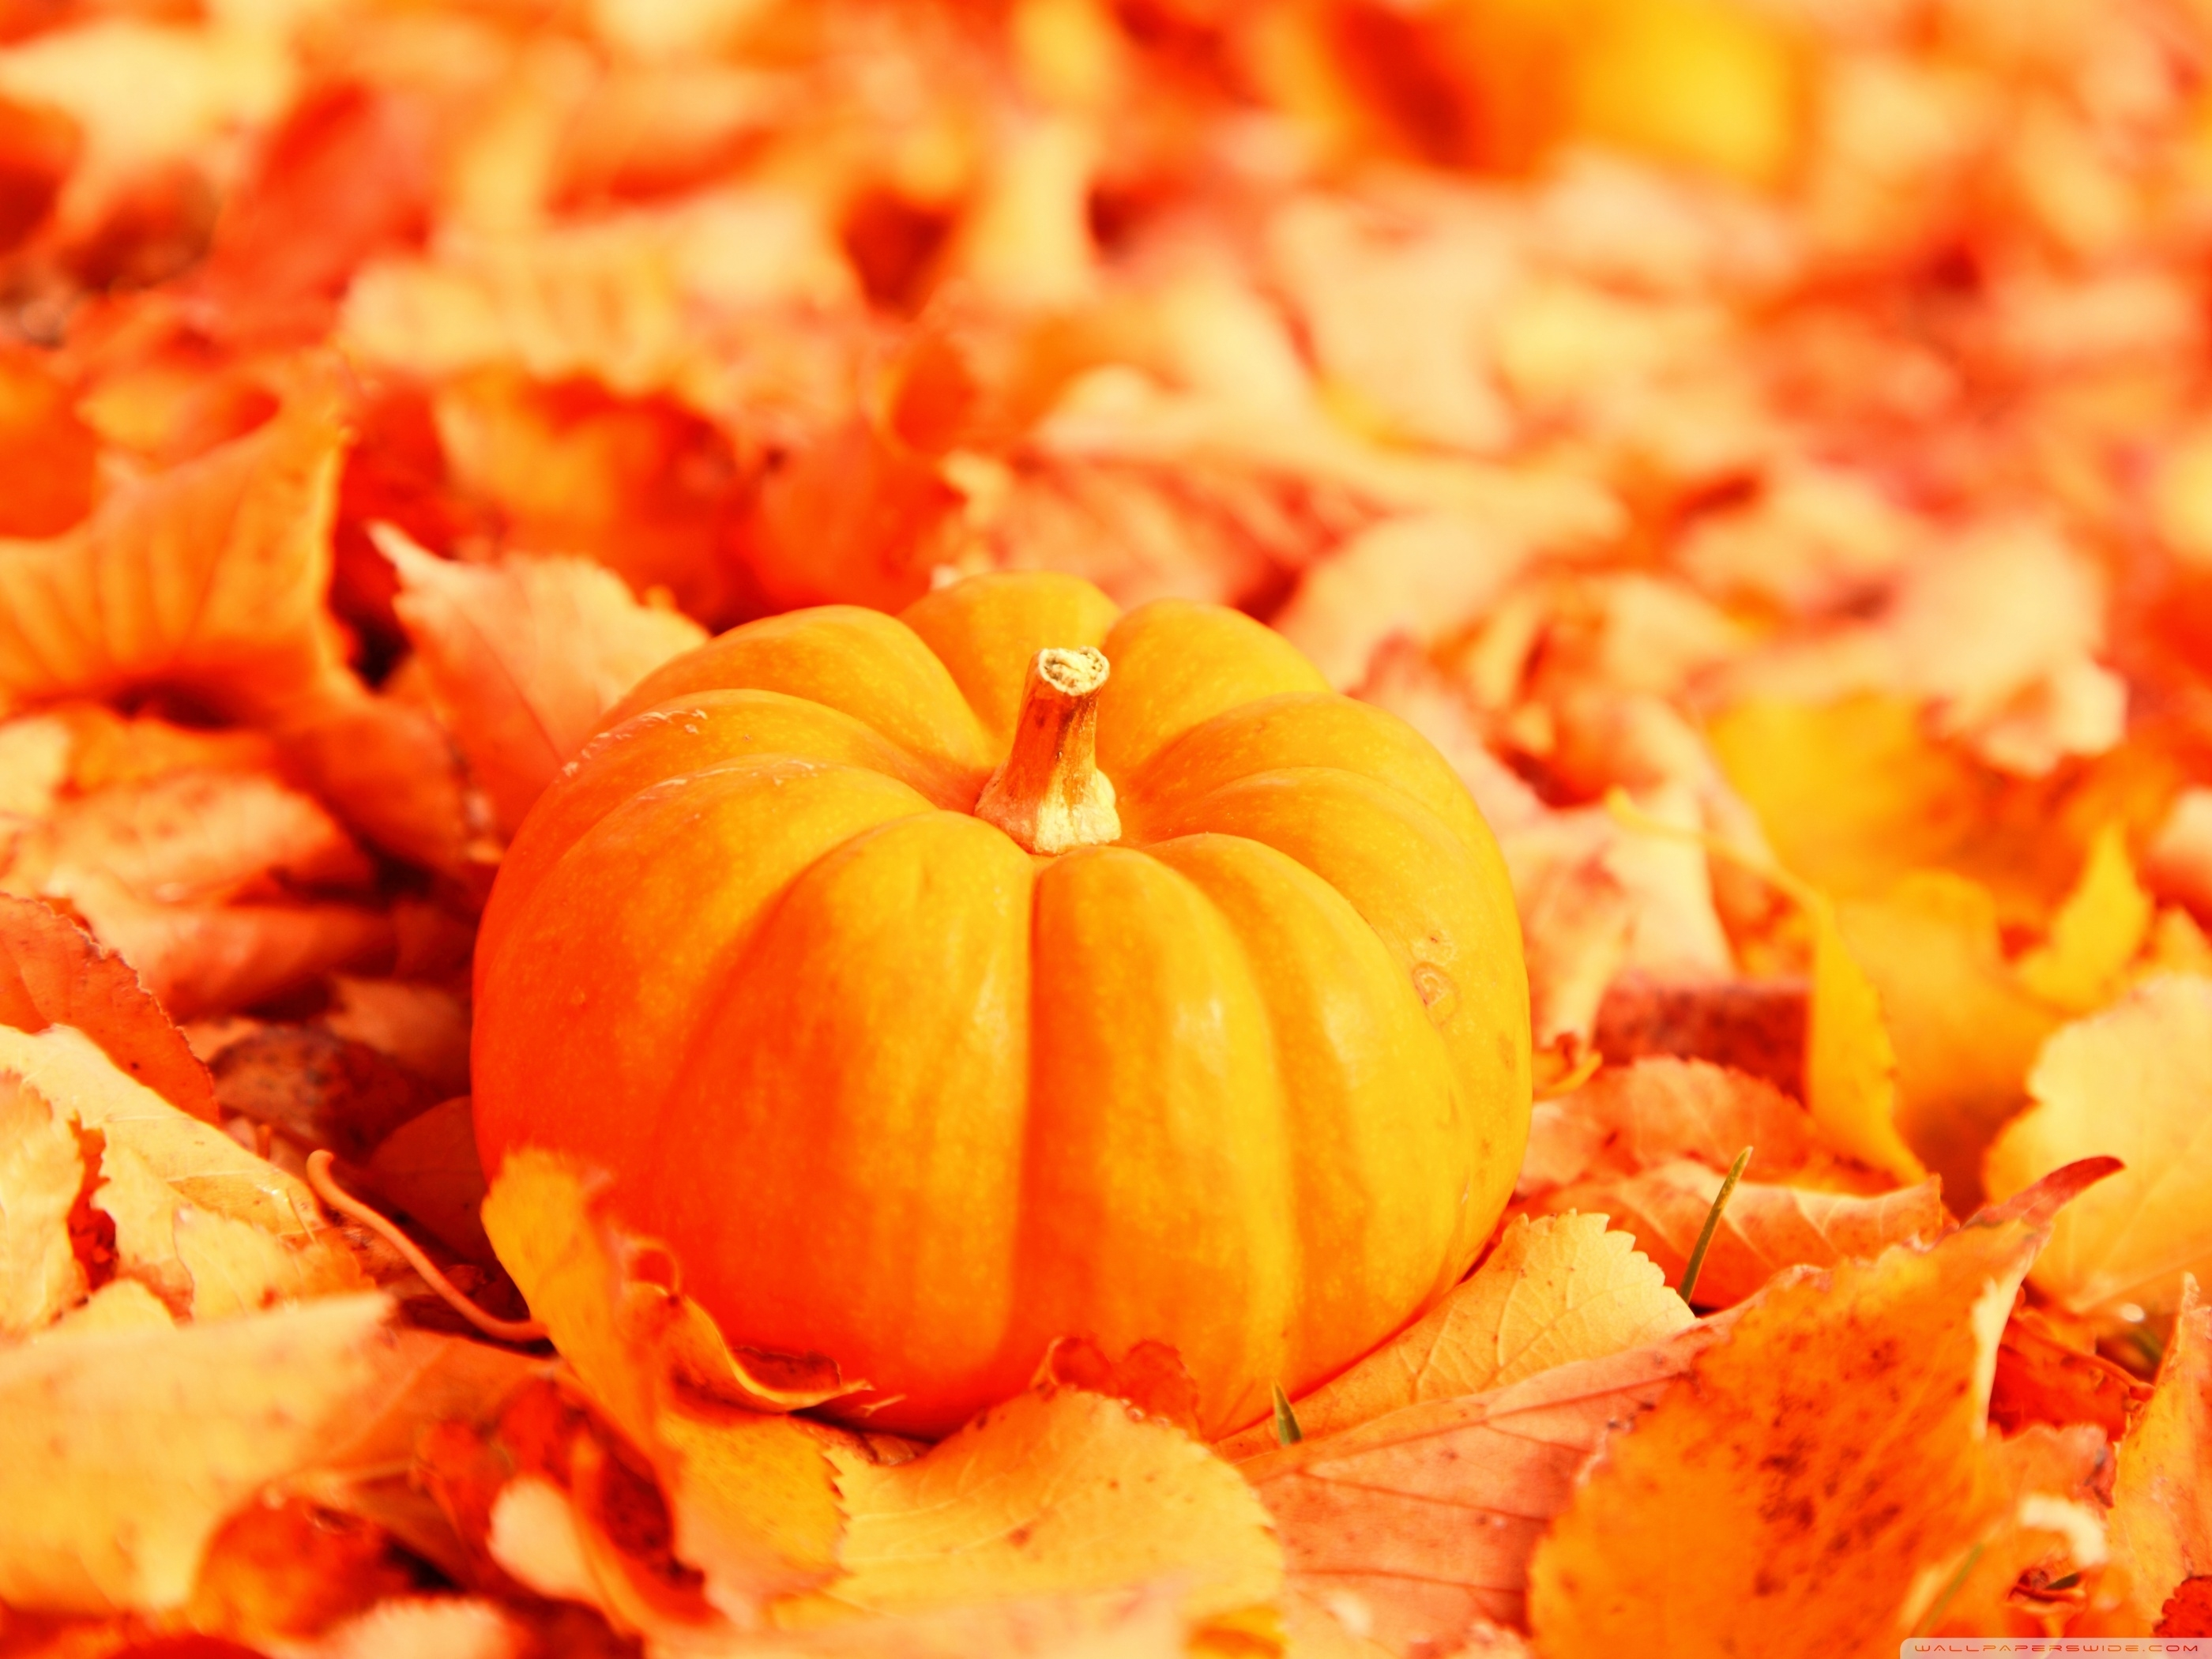 pumpkin and autumn leaves ❤ 4k hd desktop wallpaper for 4k ultra hd